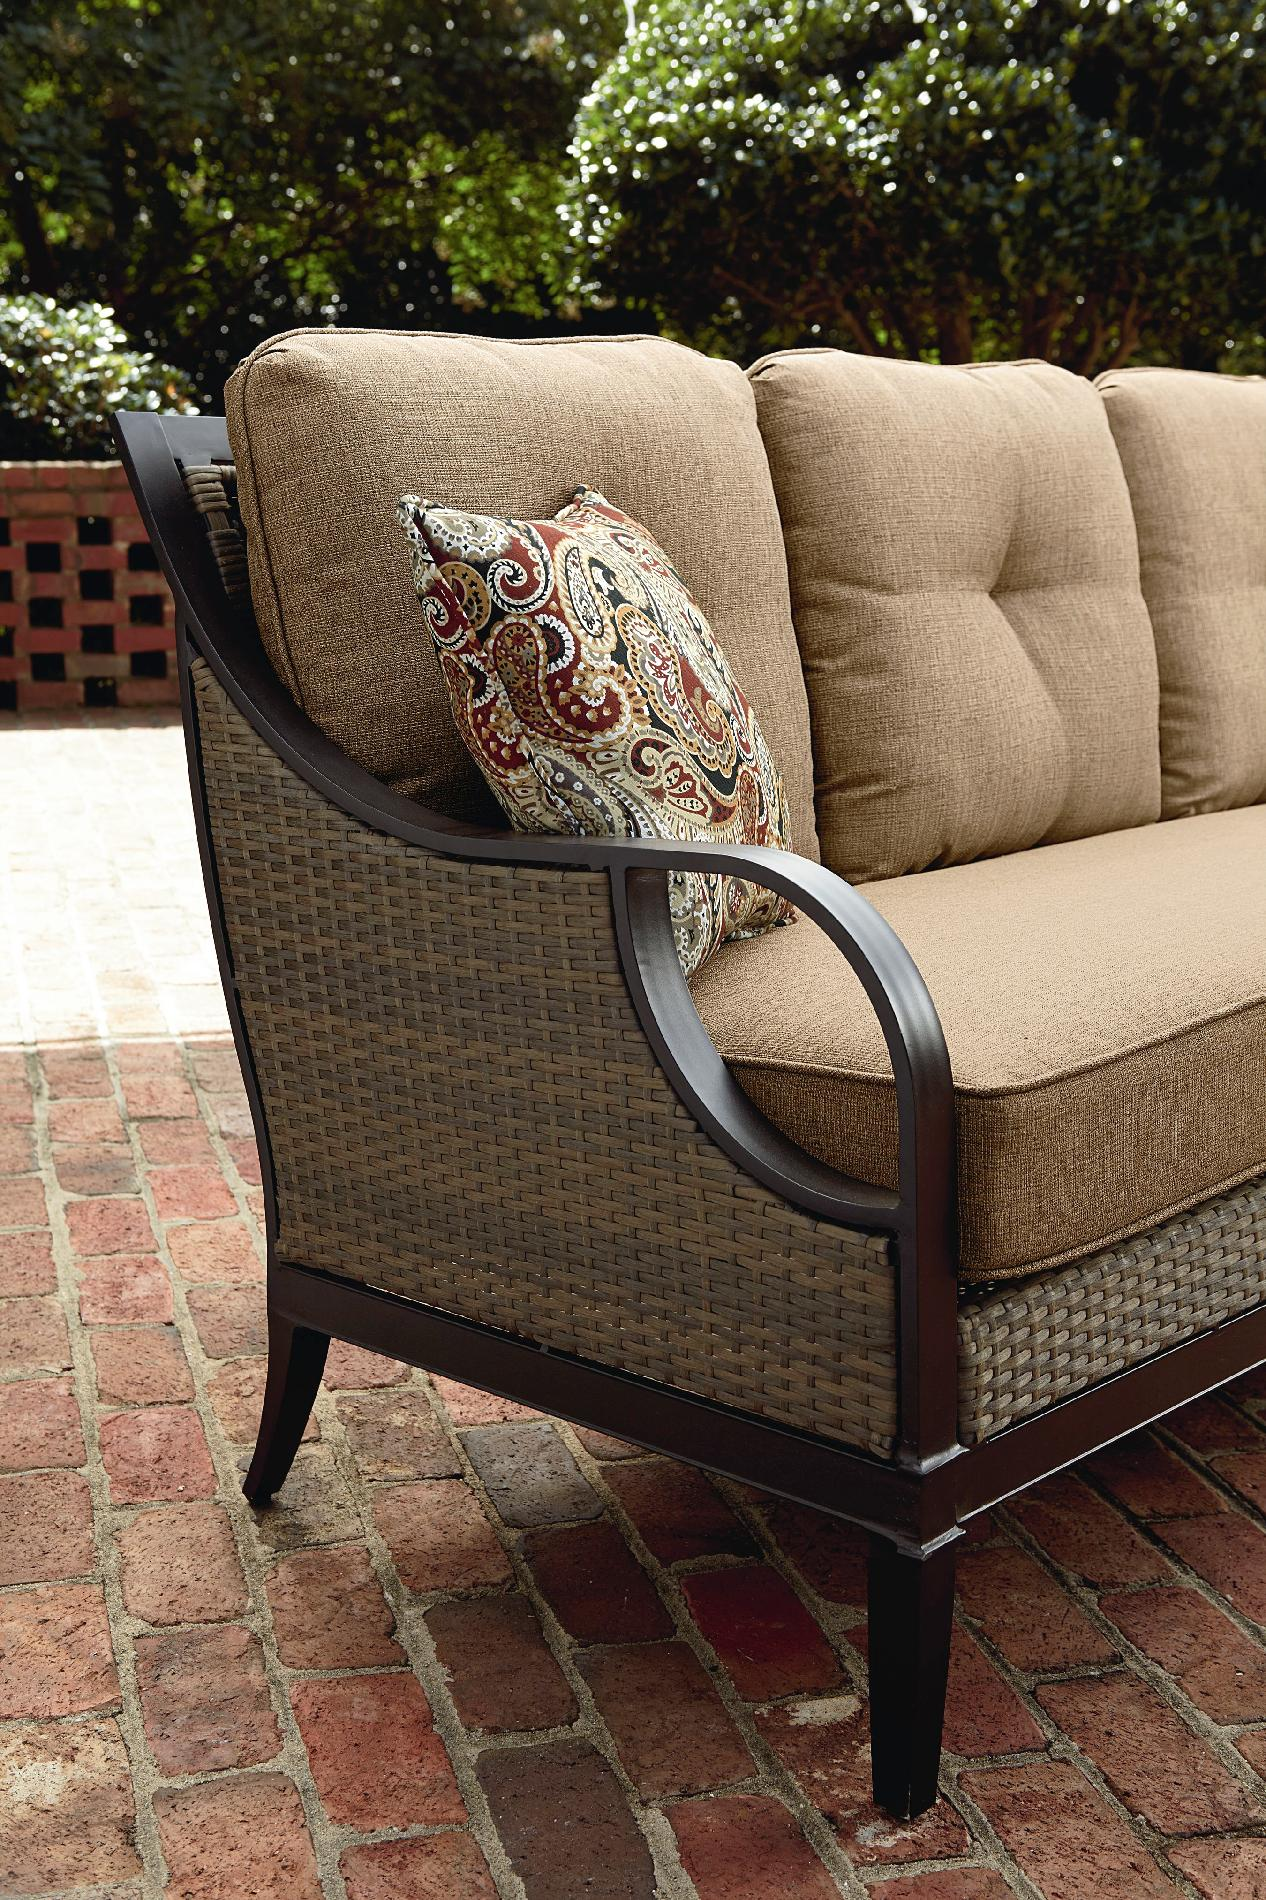 La-Z-Boy Outdoor Charlotte Sofa